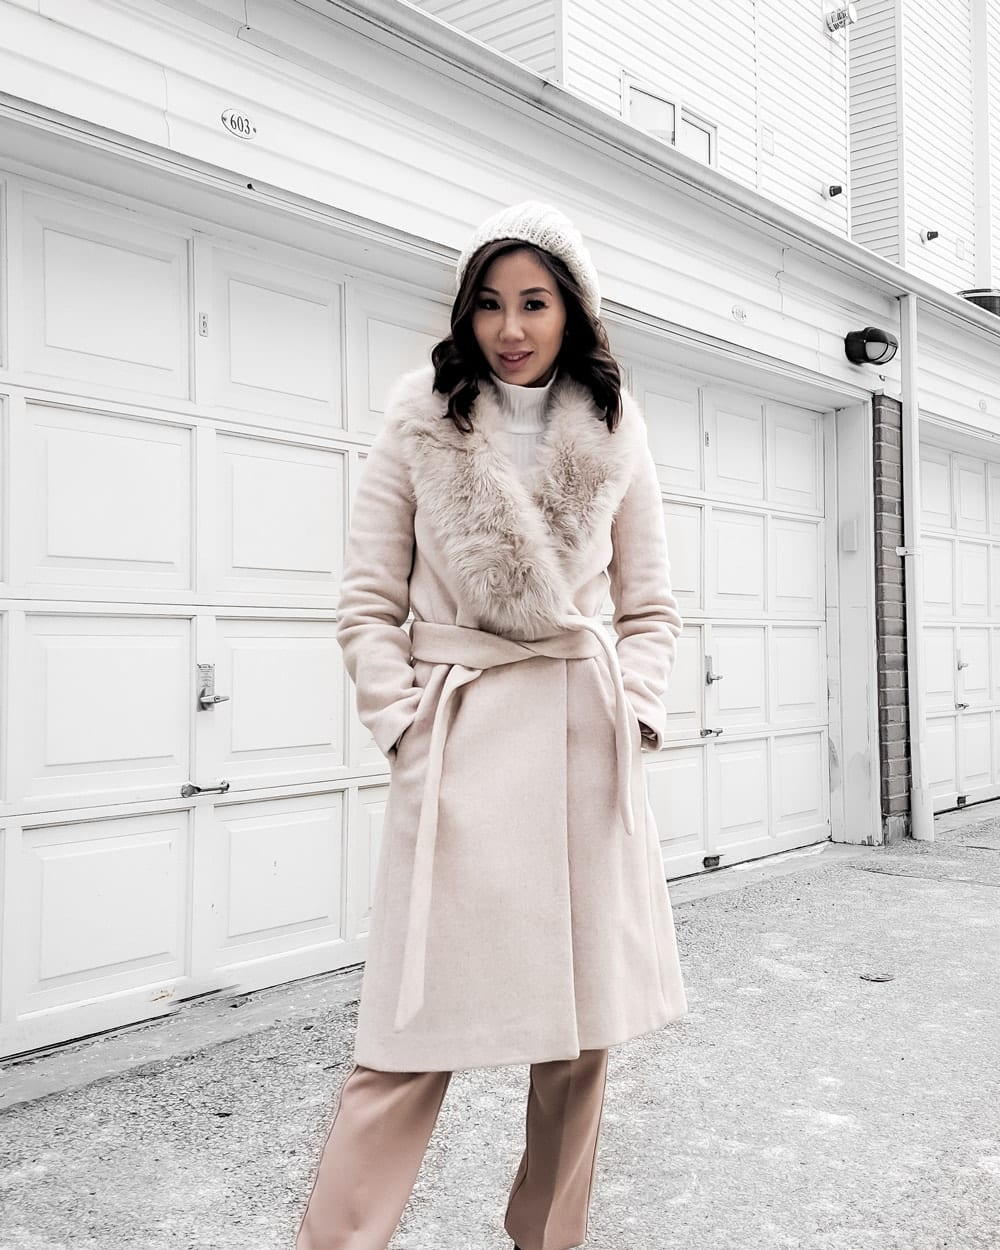 OOTD - Pink wool coat with fur trim